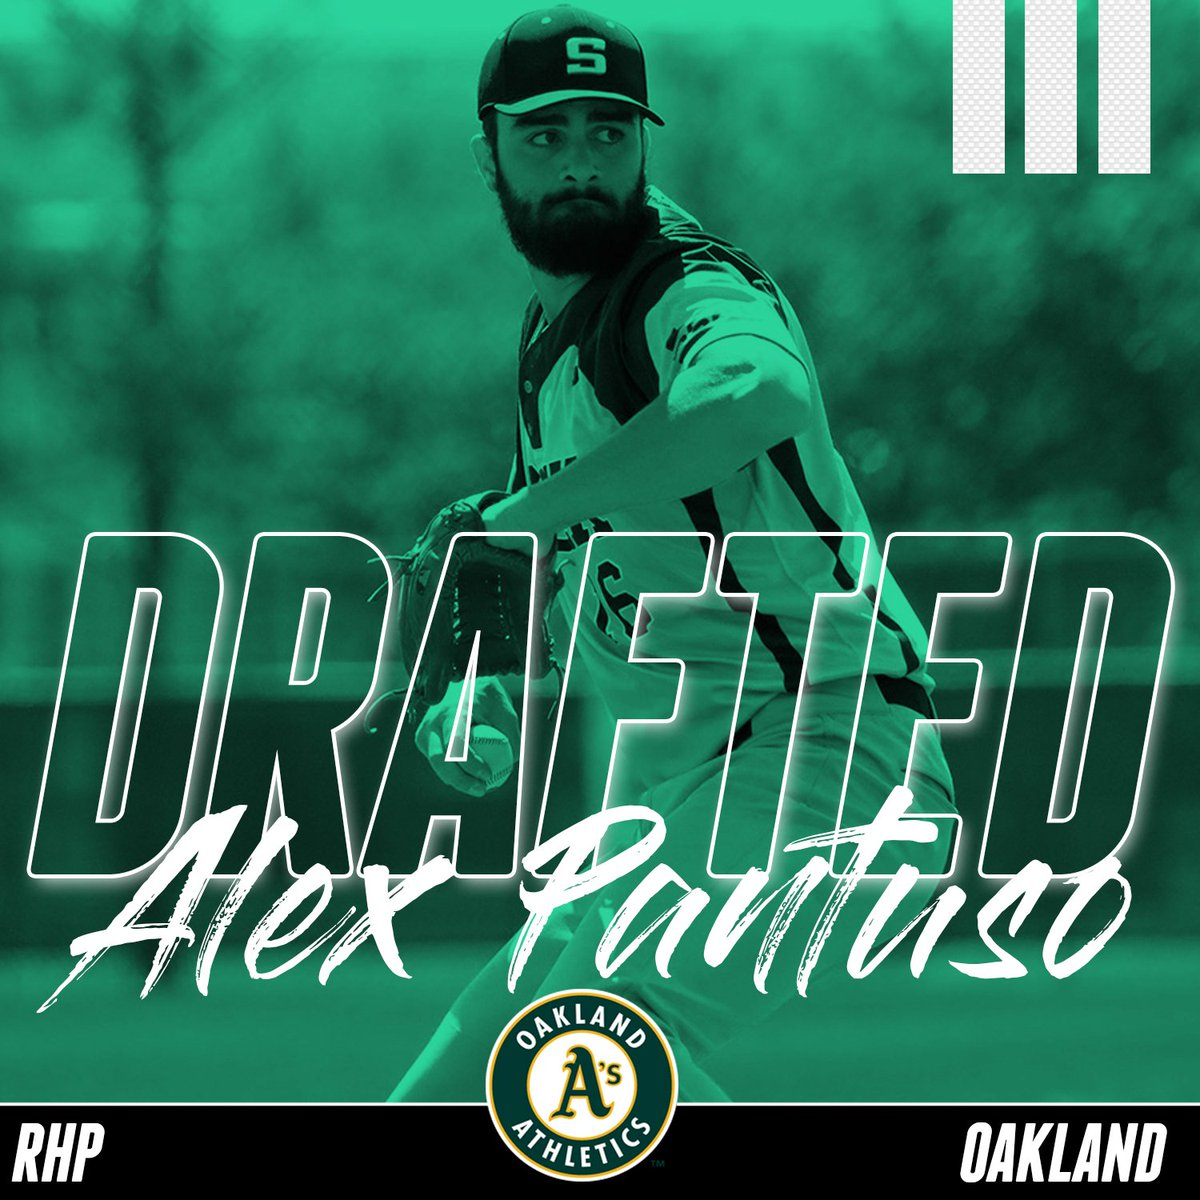 BASE: The @Athletics select Alex Pantuso in the 31st round (#923) of the MLB Draft. Congrats to both Alex and The As (They got a steal and the last pitcher Oakland took from The Rock has worked put pretty well so far).